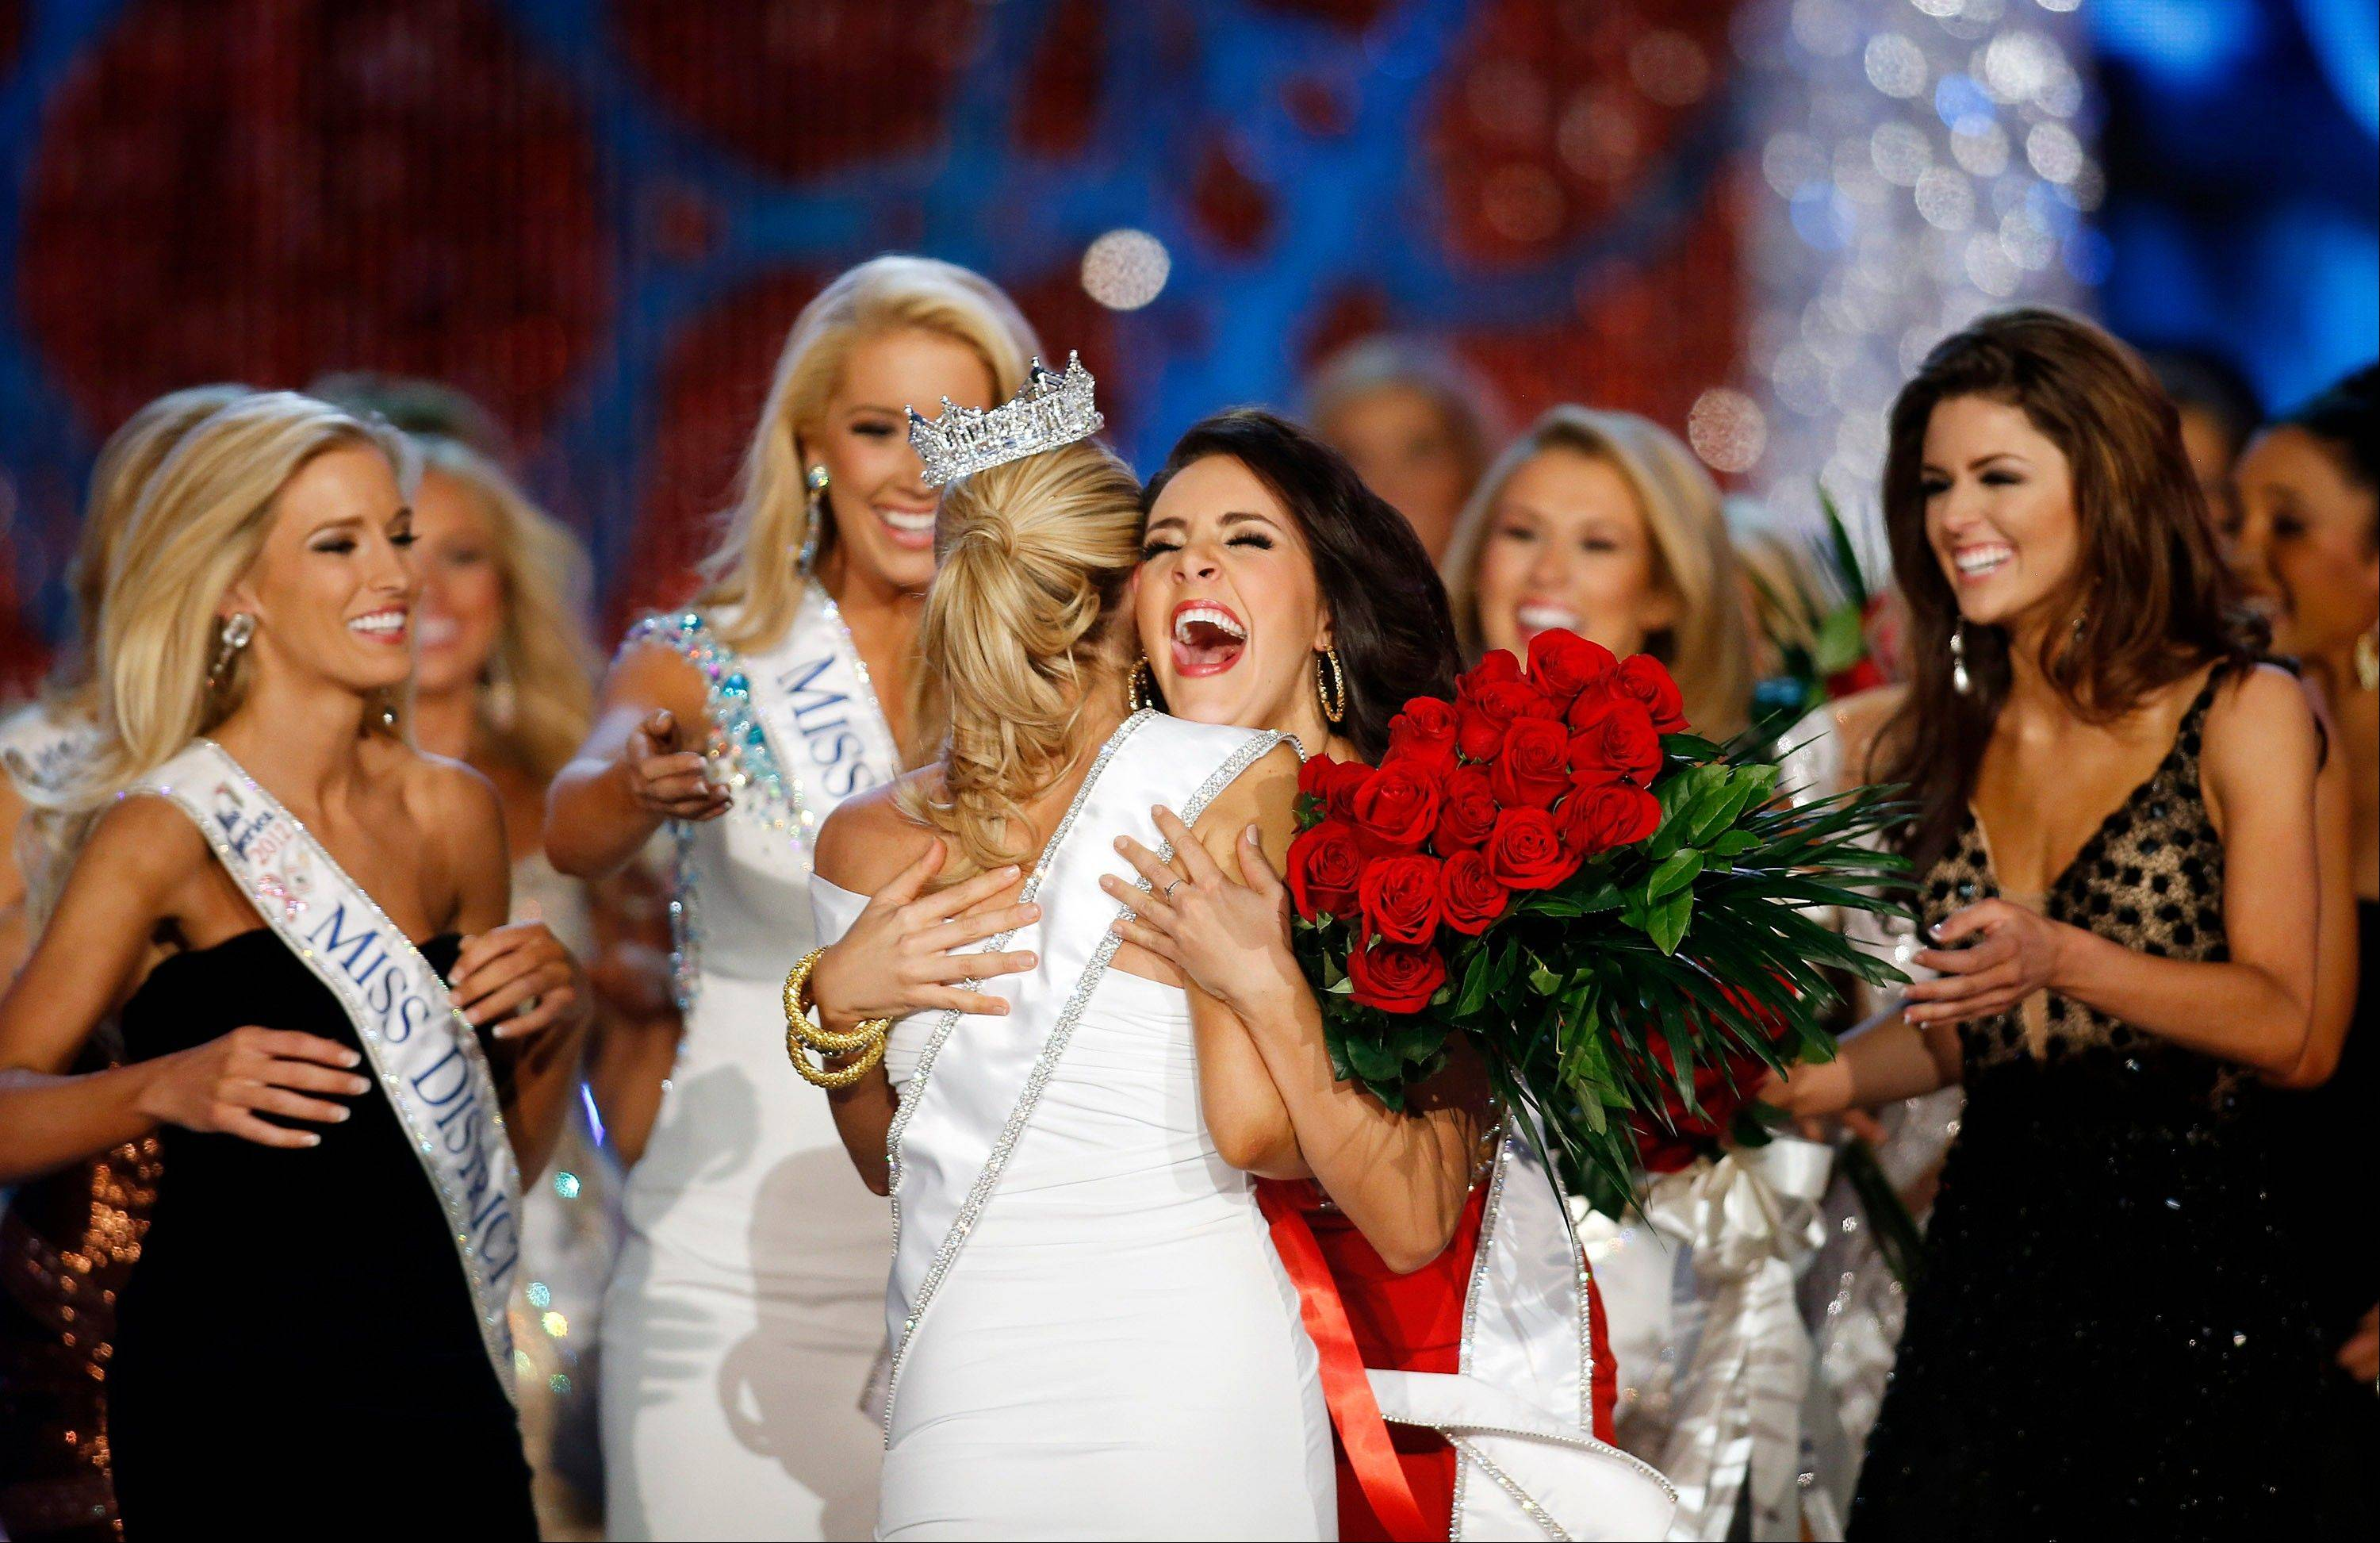 Miss Georgia Leighton Jordan, center, congratulates Miss New York Mallory Hytes Hagan for winning the Miss America 2013 pageant on Saturday, Jan. 12, 2013, in Las Vegas.